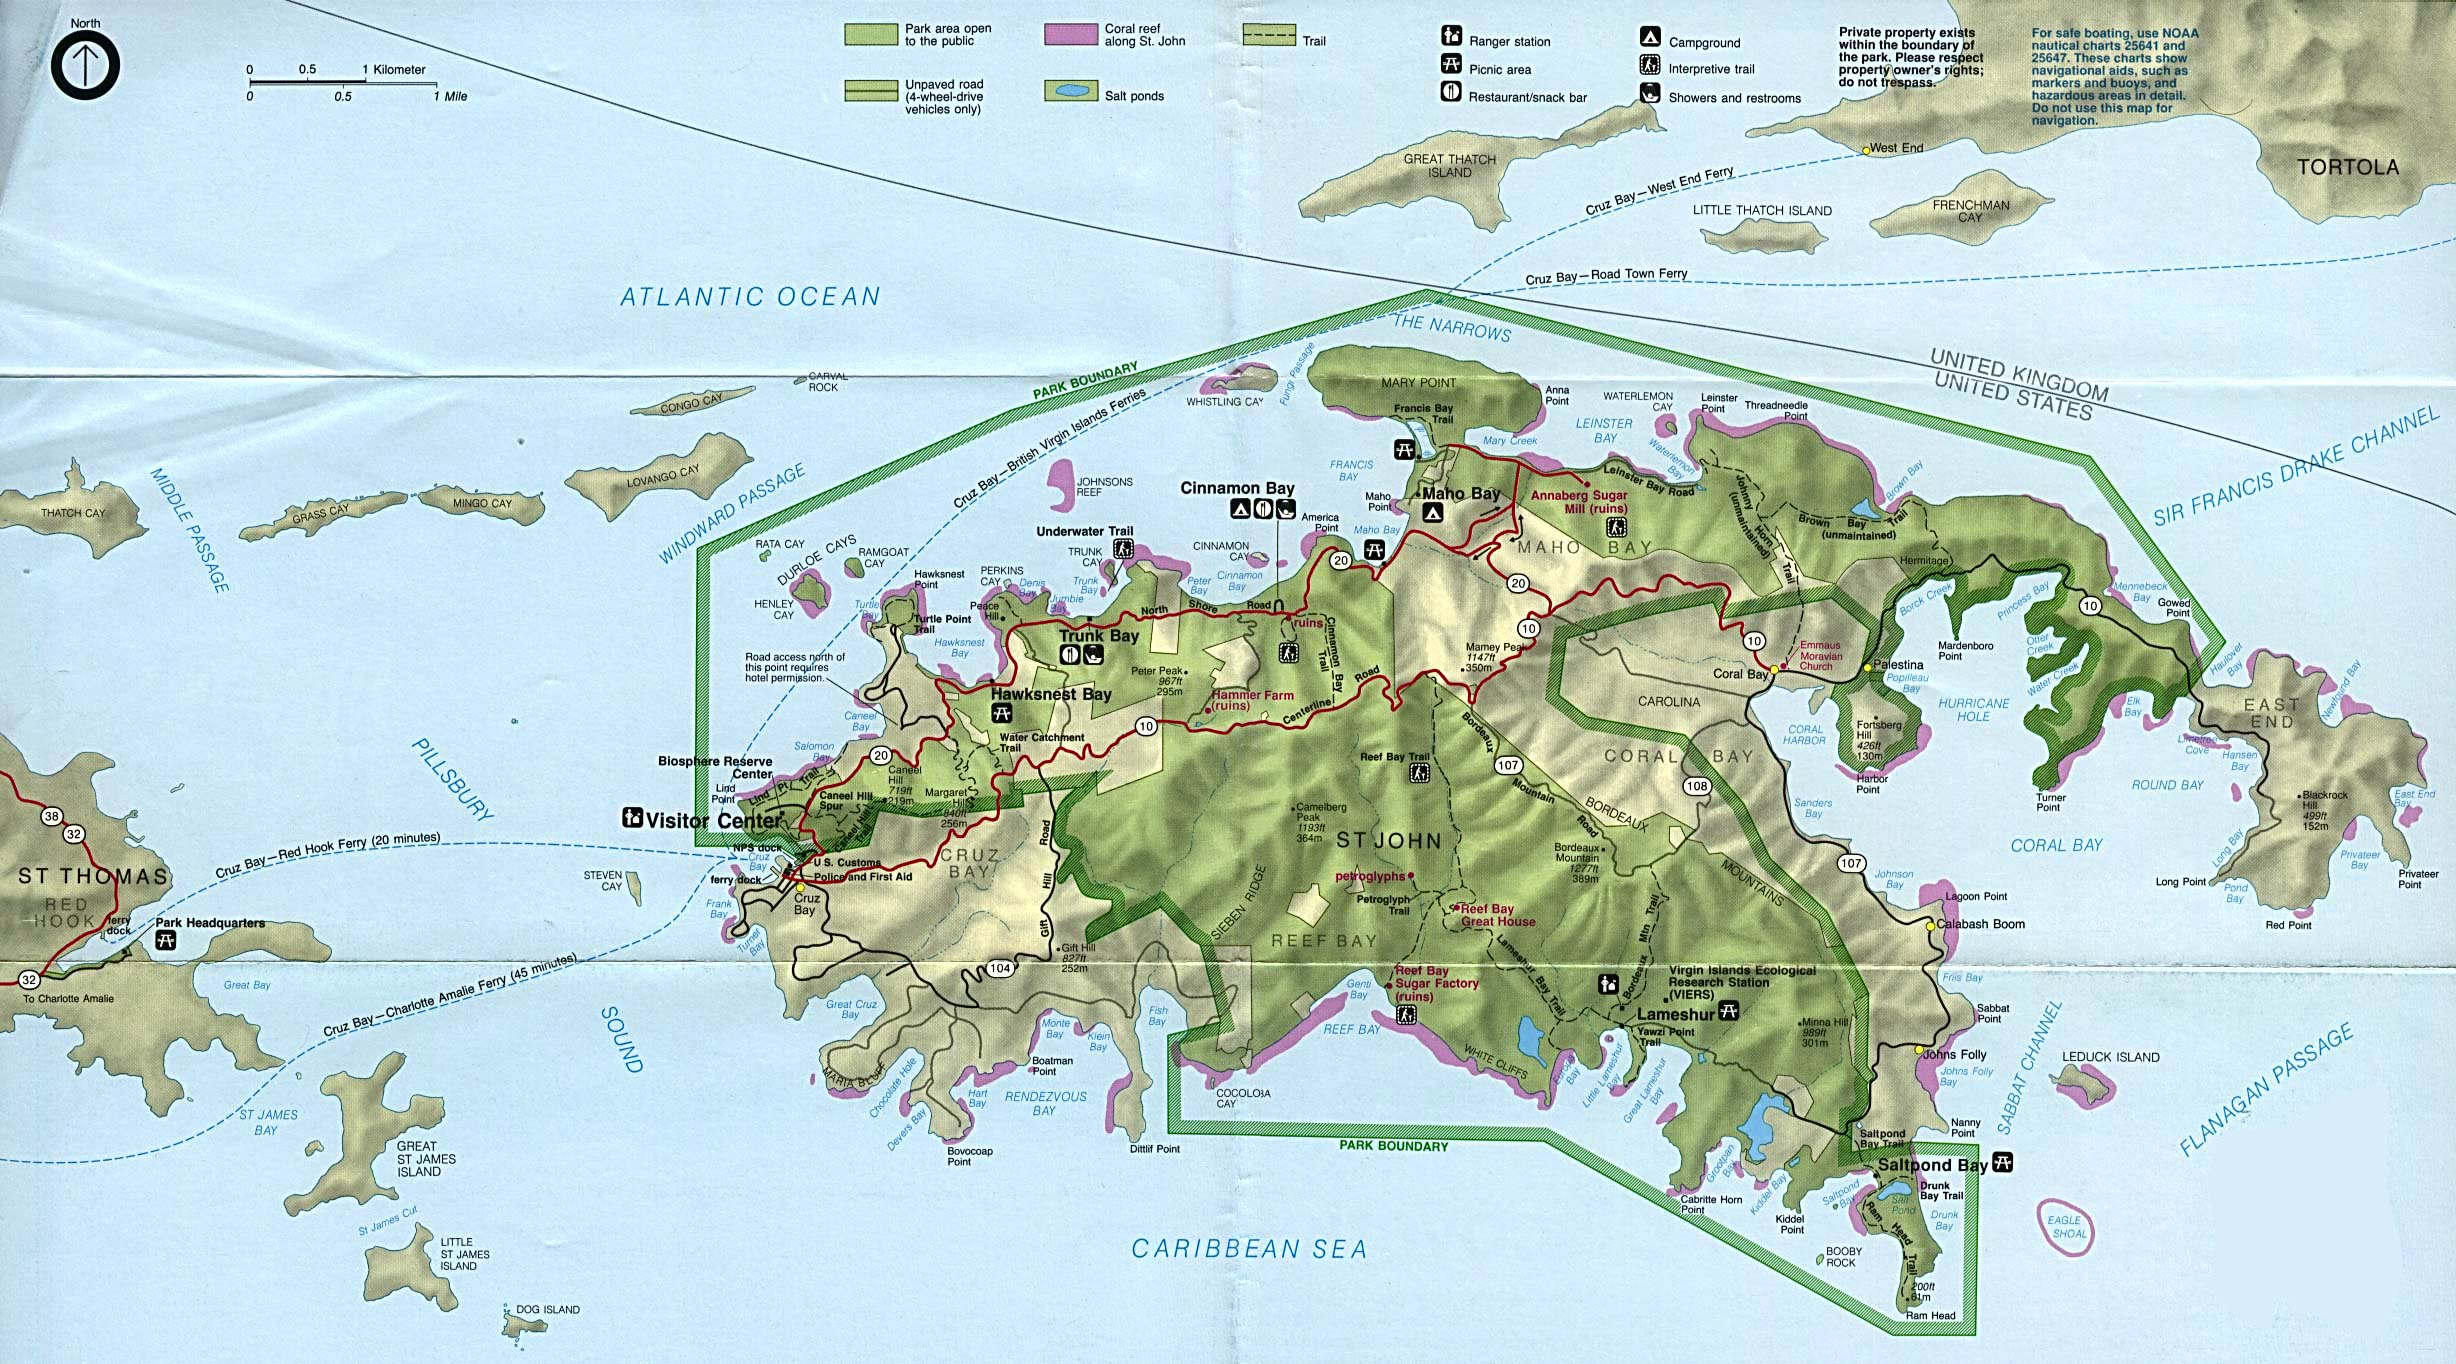 Virgin Islands National Park (Park Map)